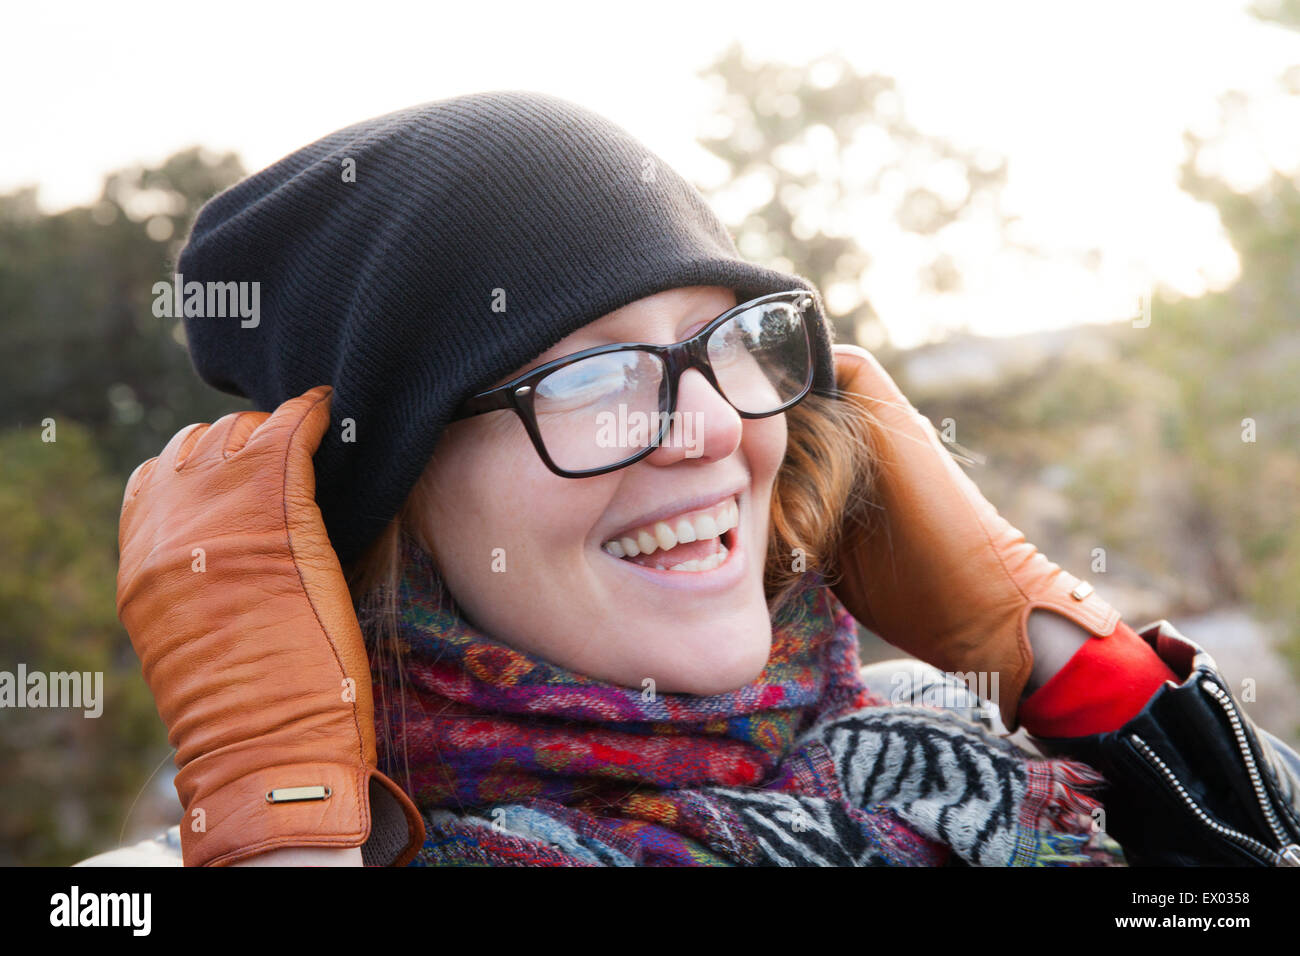 Close up of woman wearing knit hat and scarf - Stock Image